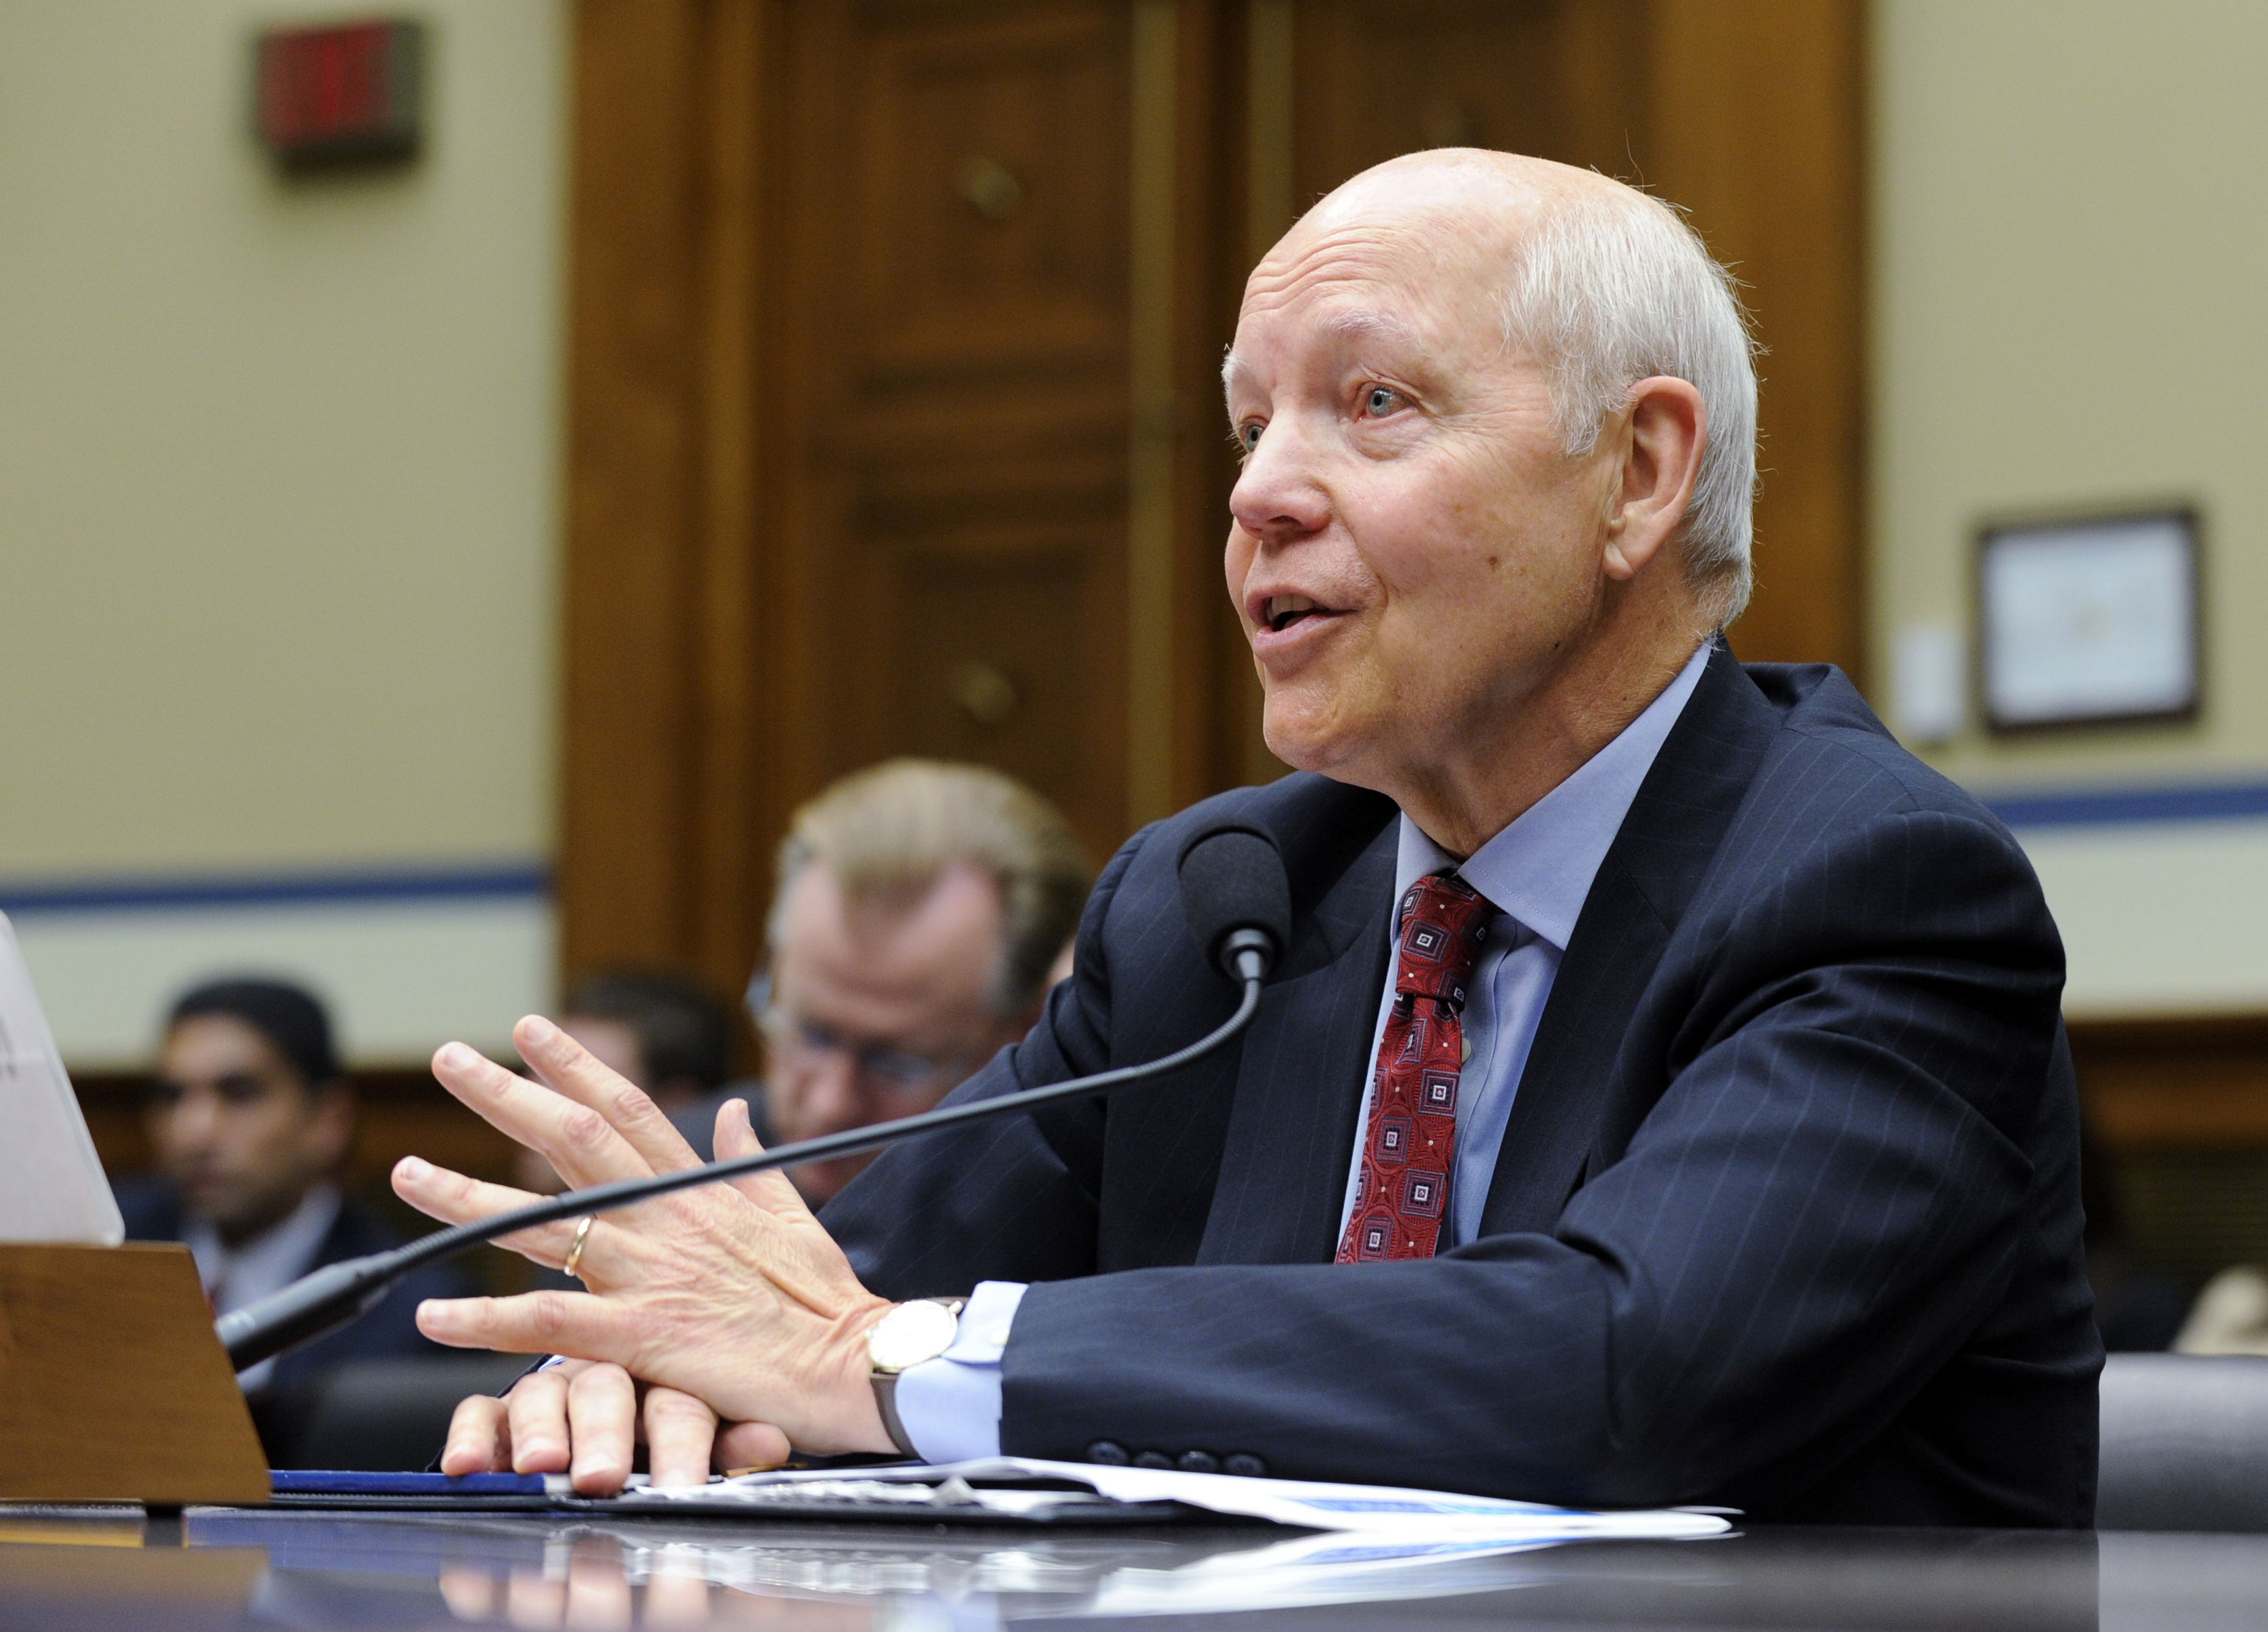 IRS Commissioner John Koskinen. (Credit: AP Photo)